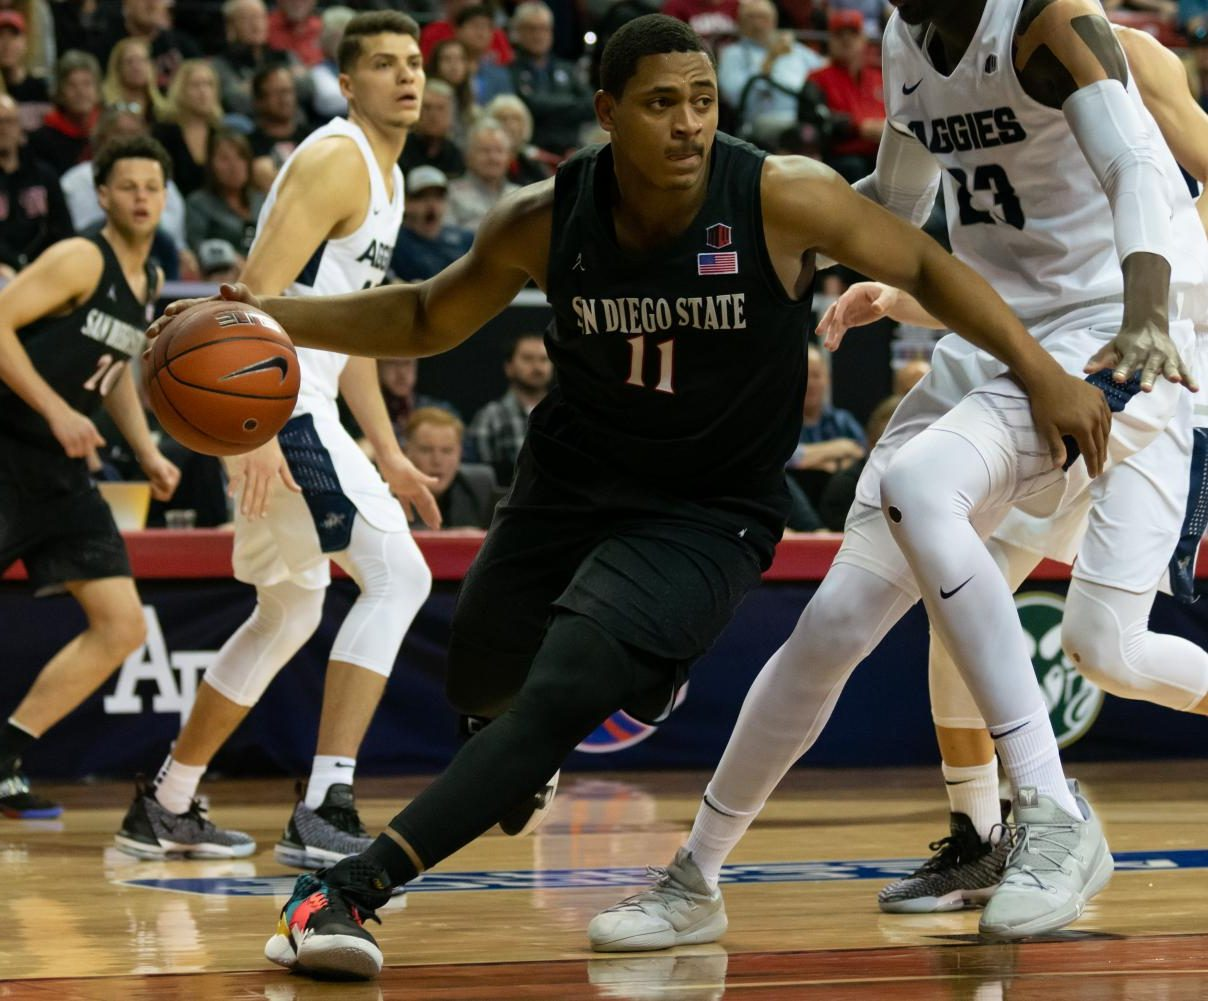 Then-sophomore forward Matt Mitchell looks to drive to the hoop in the Aztecs' 64-57 loss to Utah State last season in the Mountain West tournament championship game on March 16 at Thomas & Mack Center in Las Vegas.